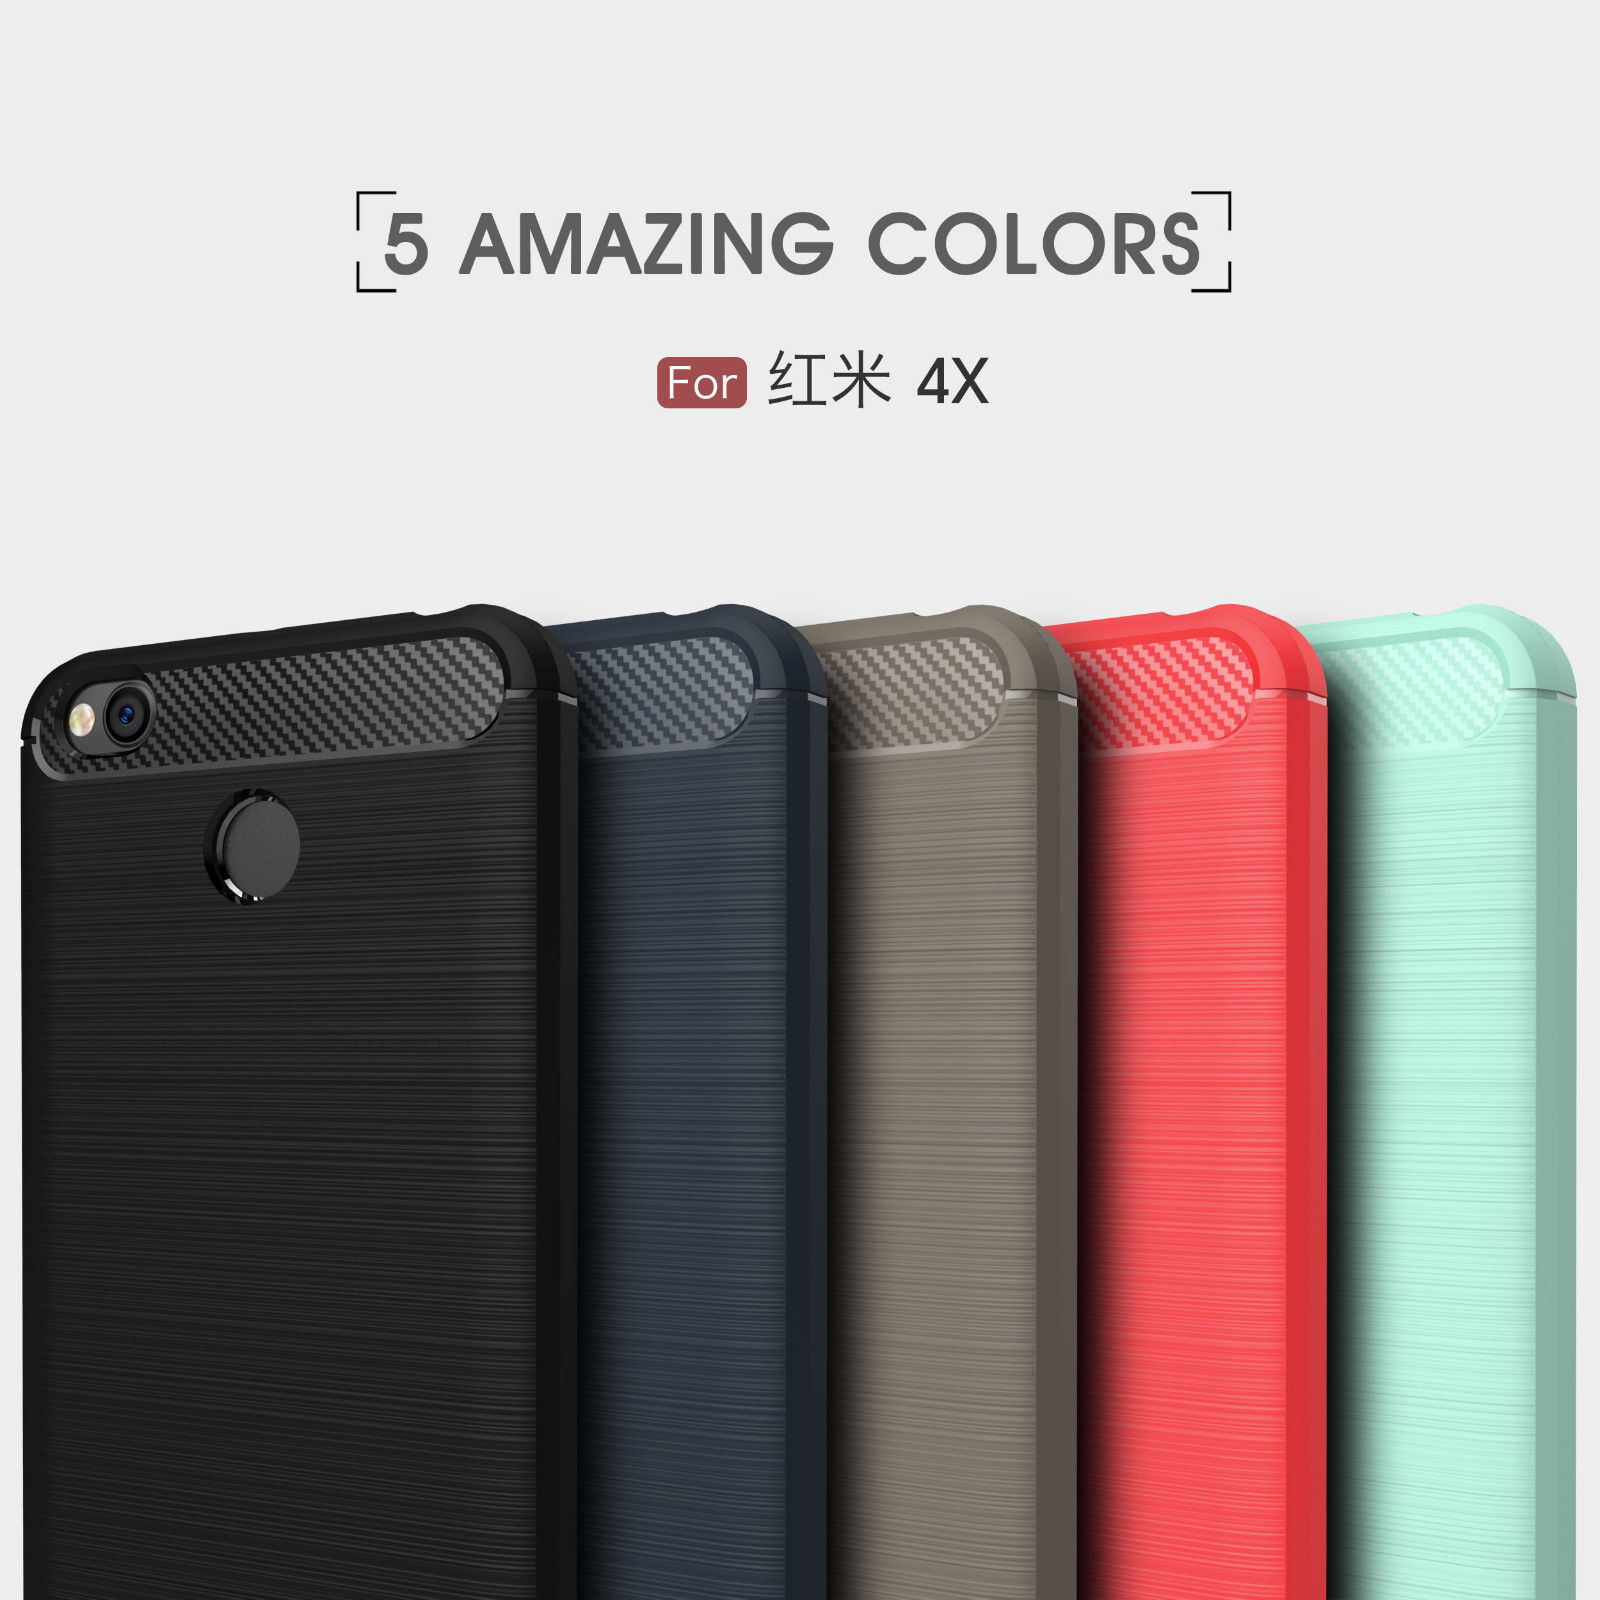 For Xiaomi Redmi Note 5 Pro 4x Plus S2 6a Brushed Soft Rubber Case Ipaky Carbon Fiber Matte Tpu Cover